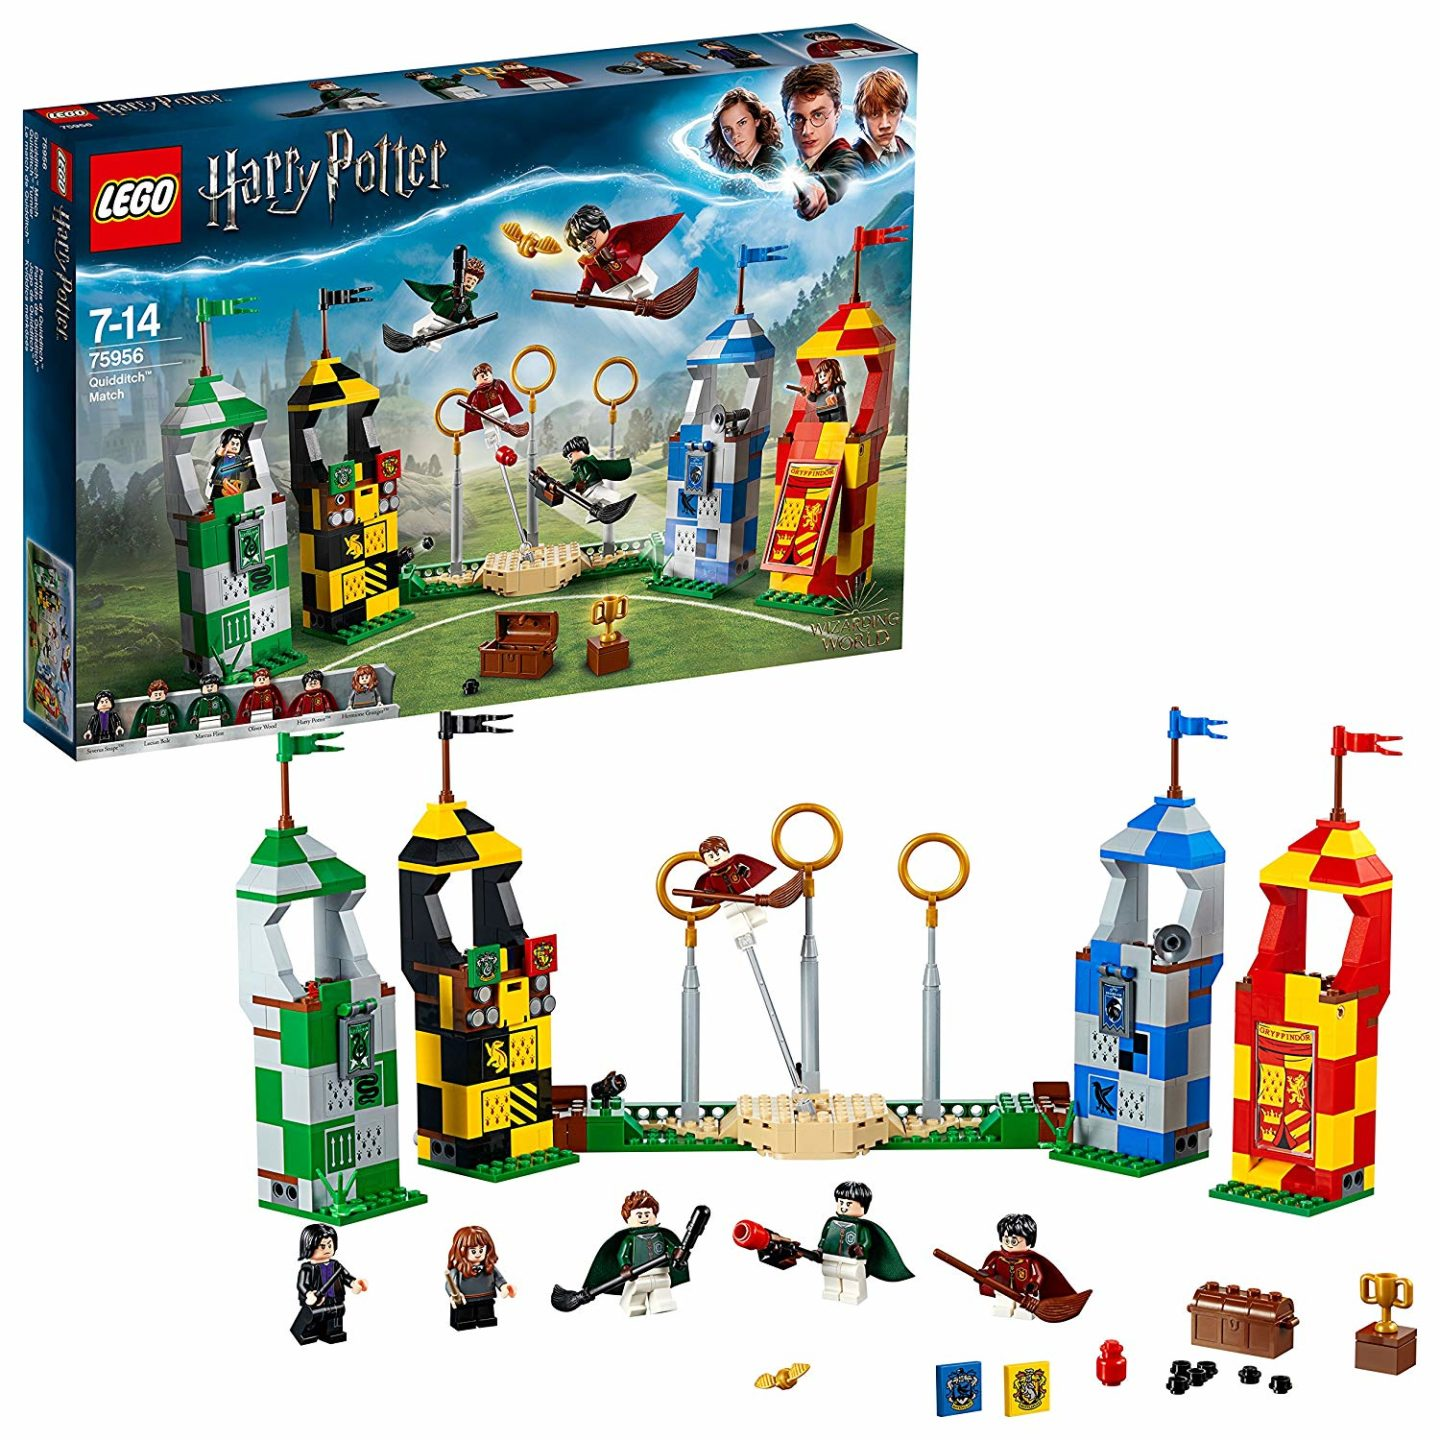 Best Harry Potter gifts for Children